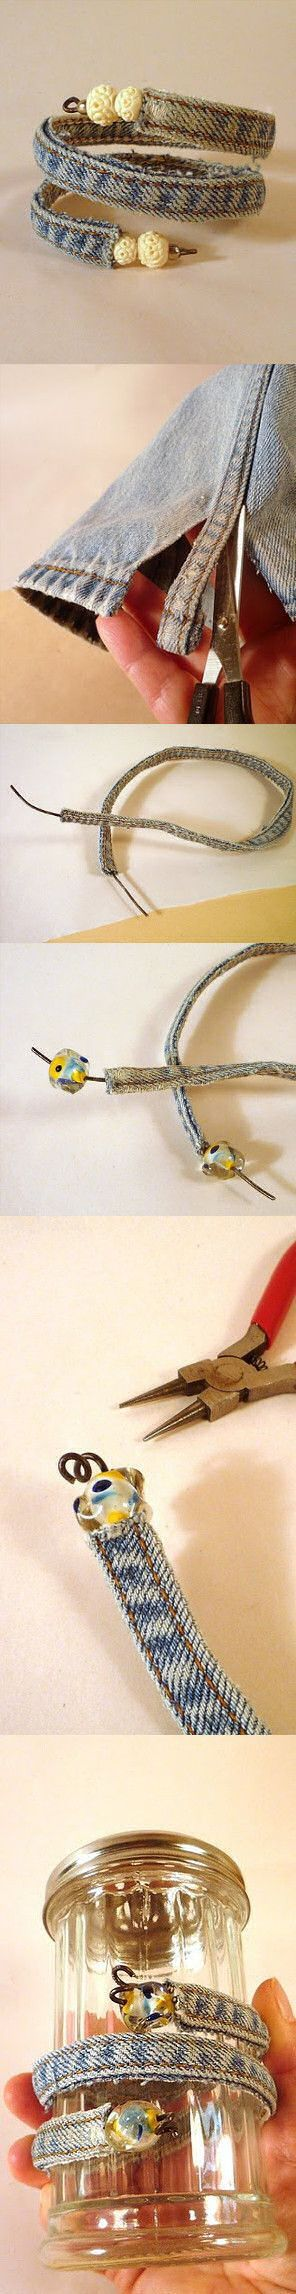 Some flower wire and an old pair of jeans makes a cool bracelet